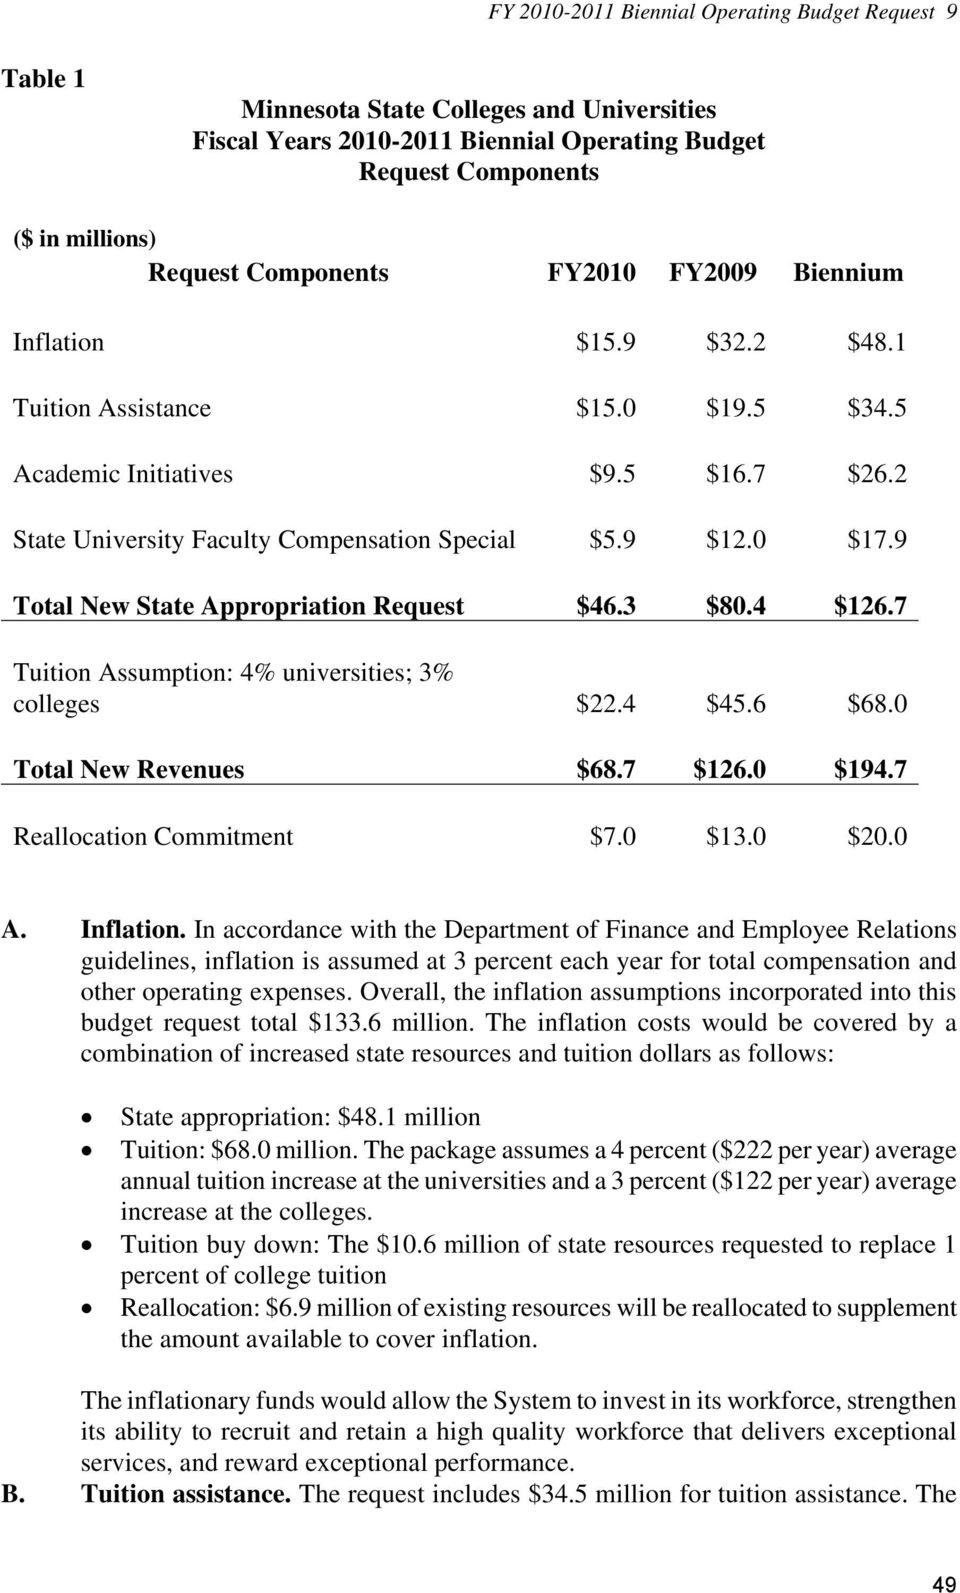 9 Total New State Appropriation Request $46.3 $80.4 $126.7 Tuition Assumption: 4% universities; 3% colleges $22.4 $45.6 $68.0 Total New Revenues $68.7 $126.0 $194.7 Reallocation Commitment $7.0 $13.